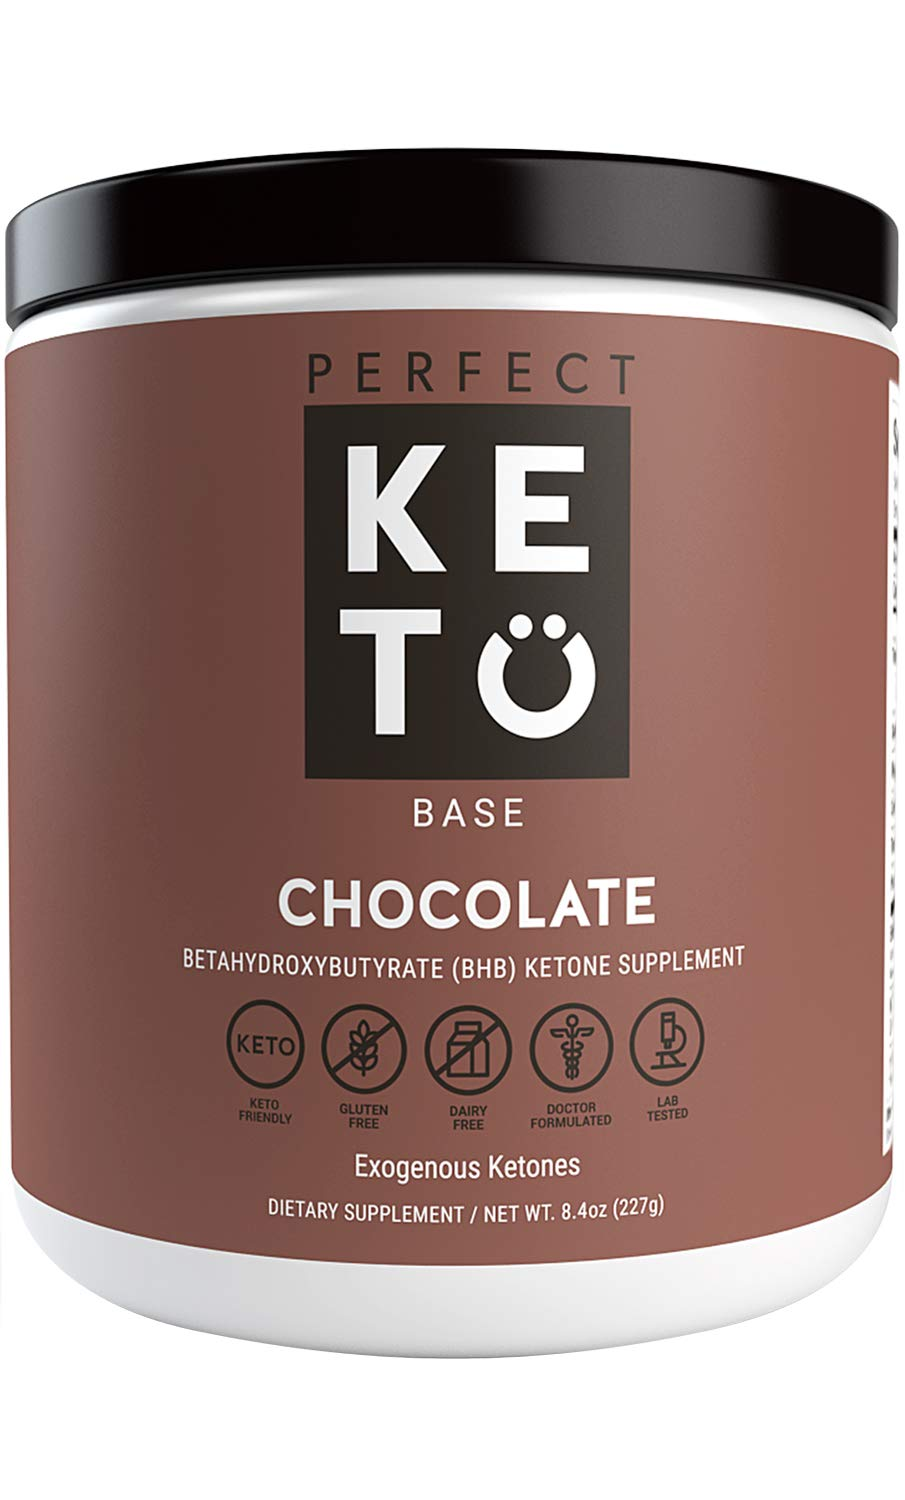 Perfect Keto Chocolate Exogenous Ketones: Base BHB Salts Supplement. Ketones for Ketogenic Diet Best to Burn Fat to Support Energy, Focus and Ketosis Beta-Hydroxybutyrate BHB Salt